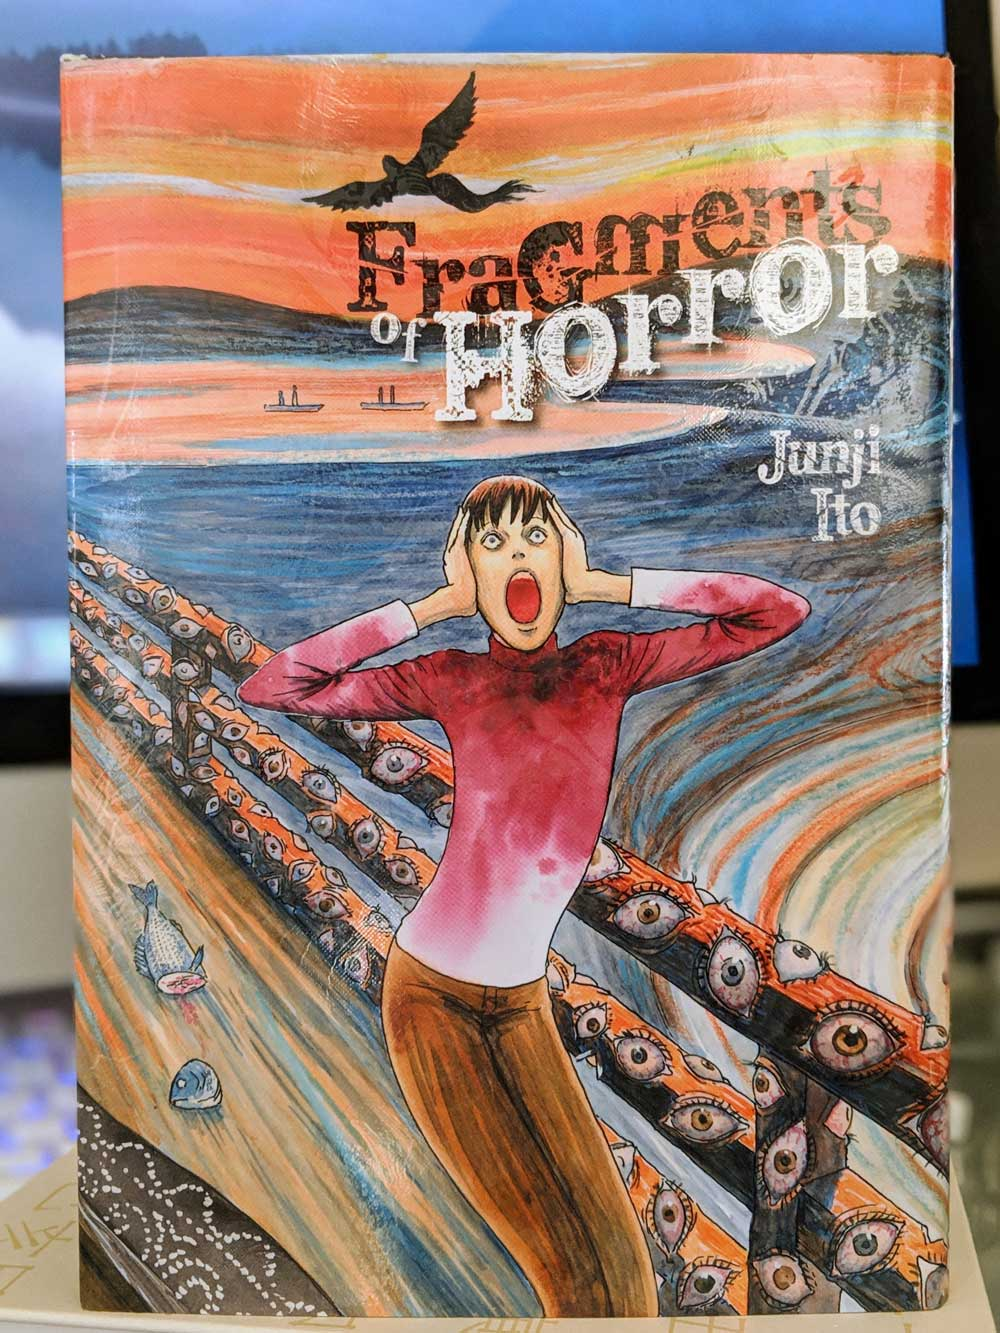 Fragments of Horror by Junji Ito (Distributed in North America by Viz Media). YBLTV Review by Katie Hernandez.